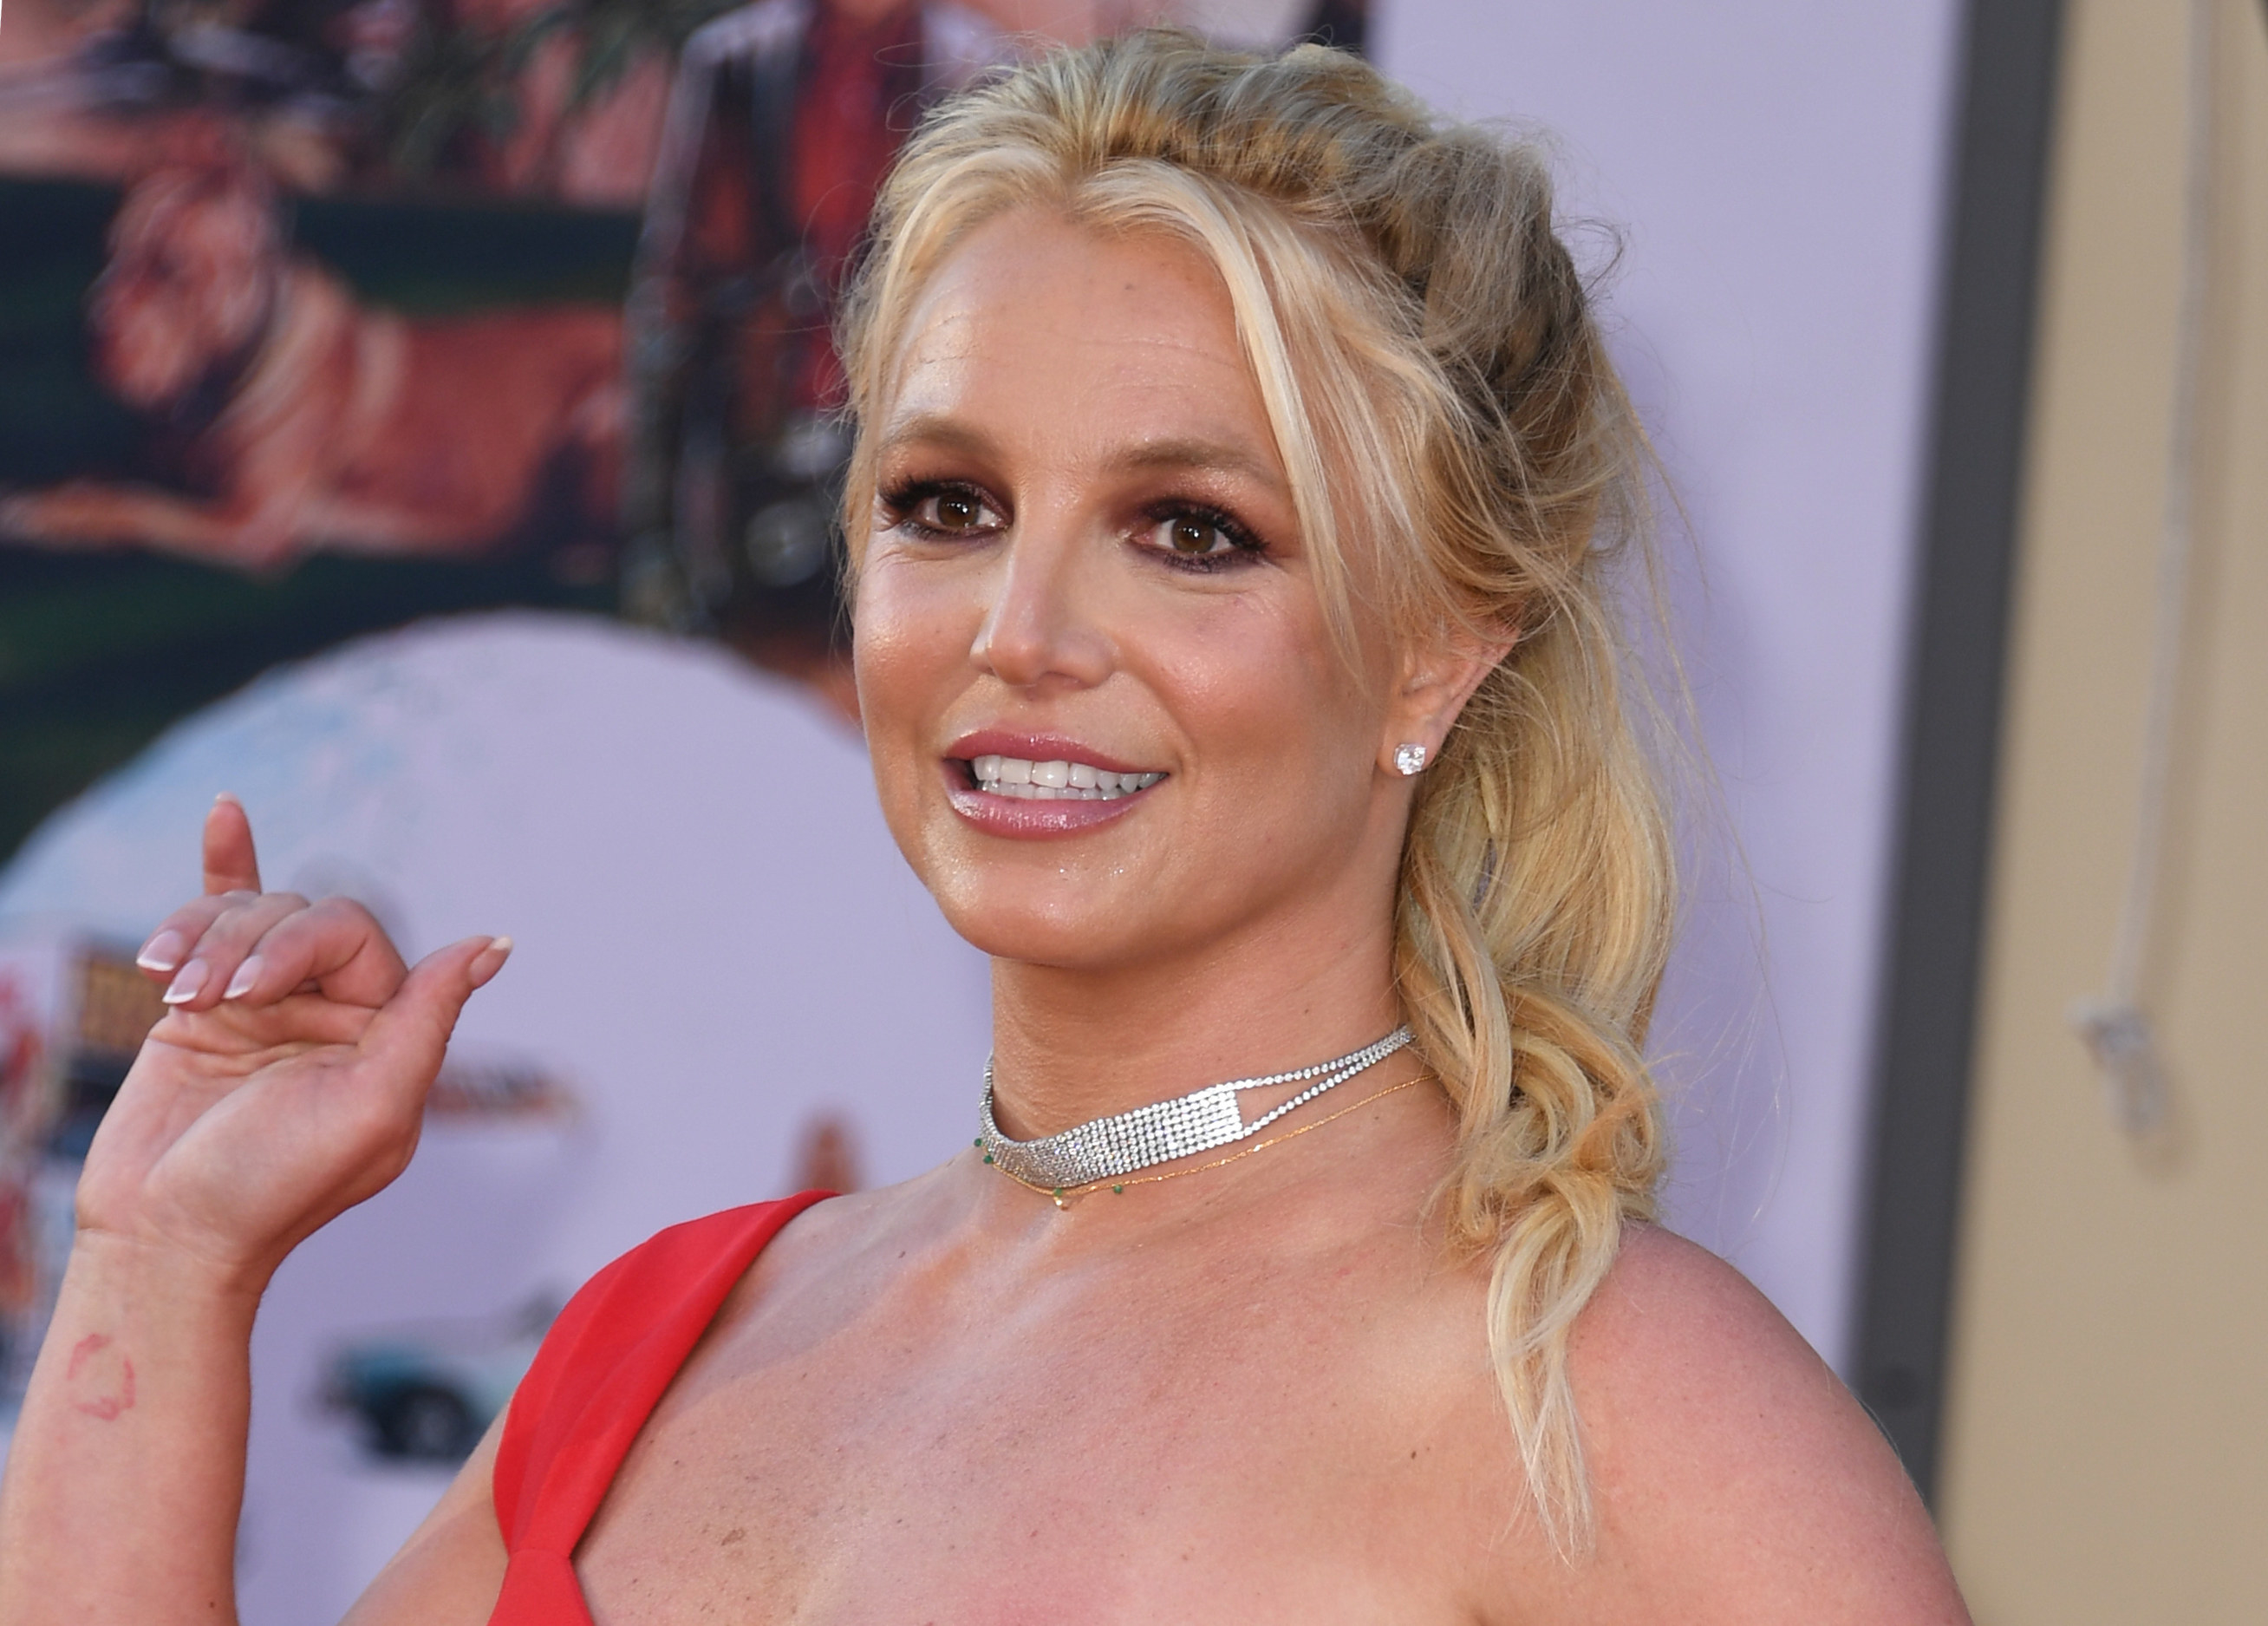 Britney Spears is photographed waving during a red carpet event